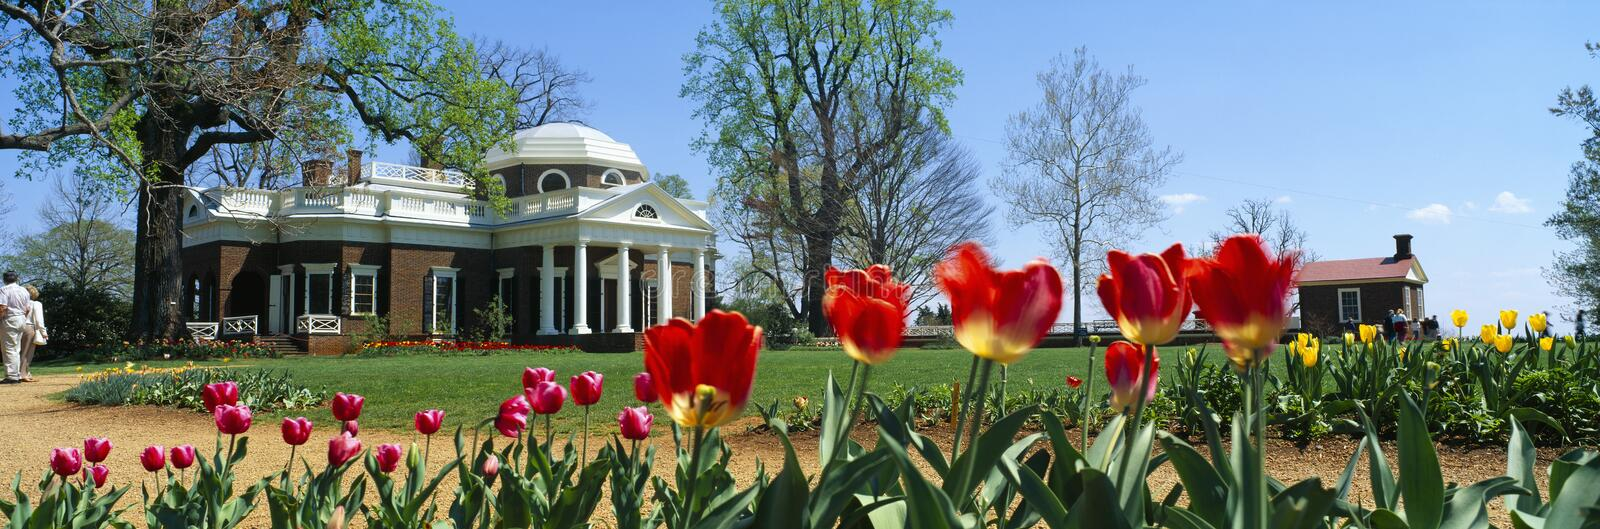 Tulips and Monticello in spring royalty free stock images